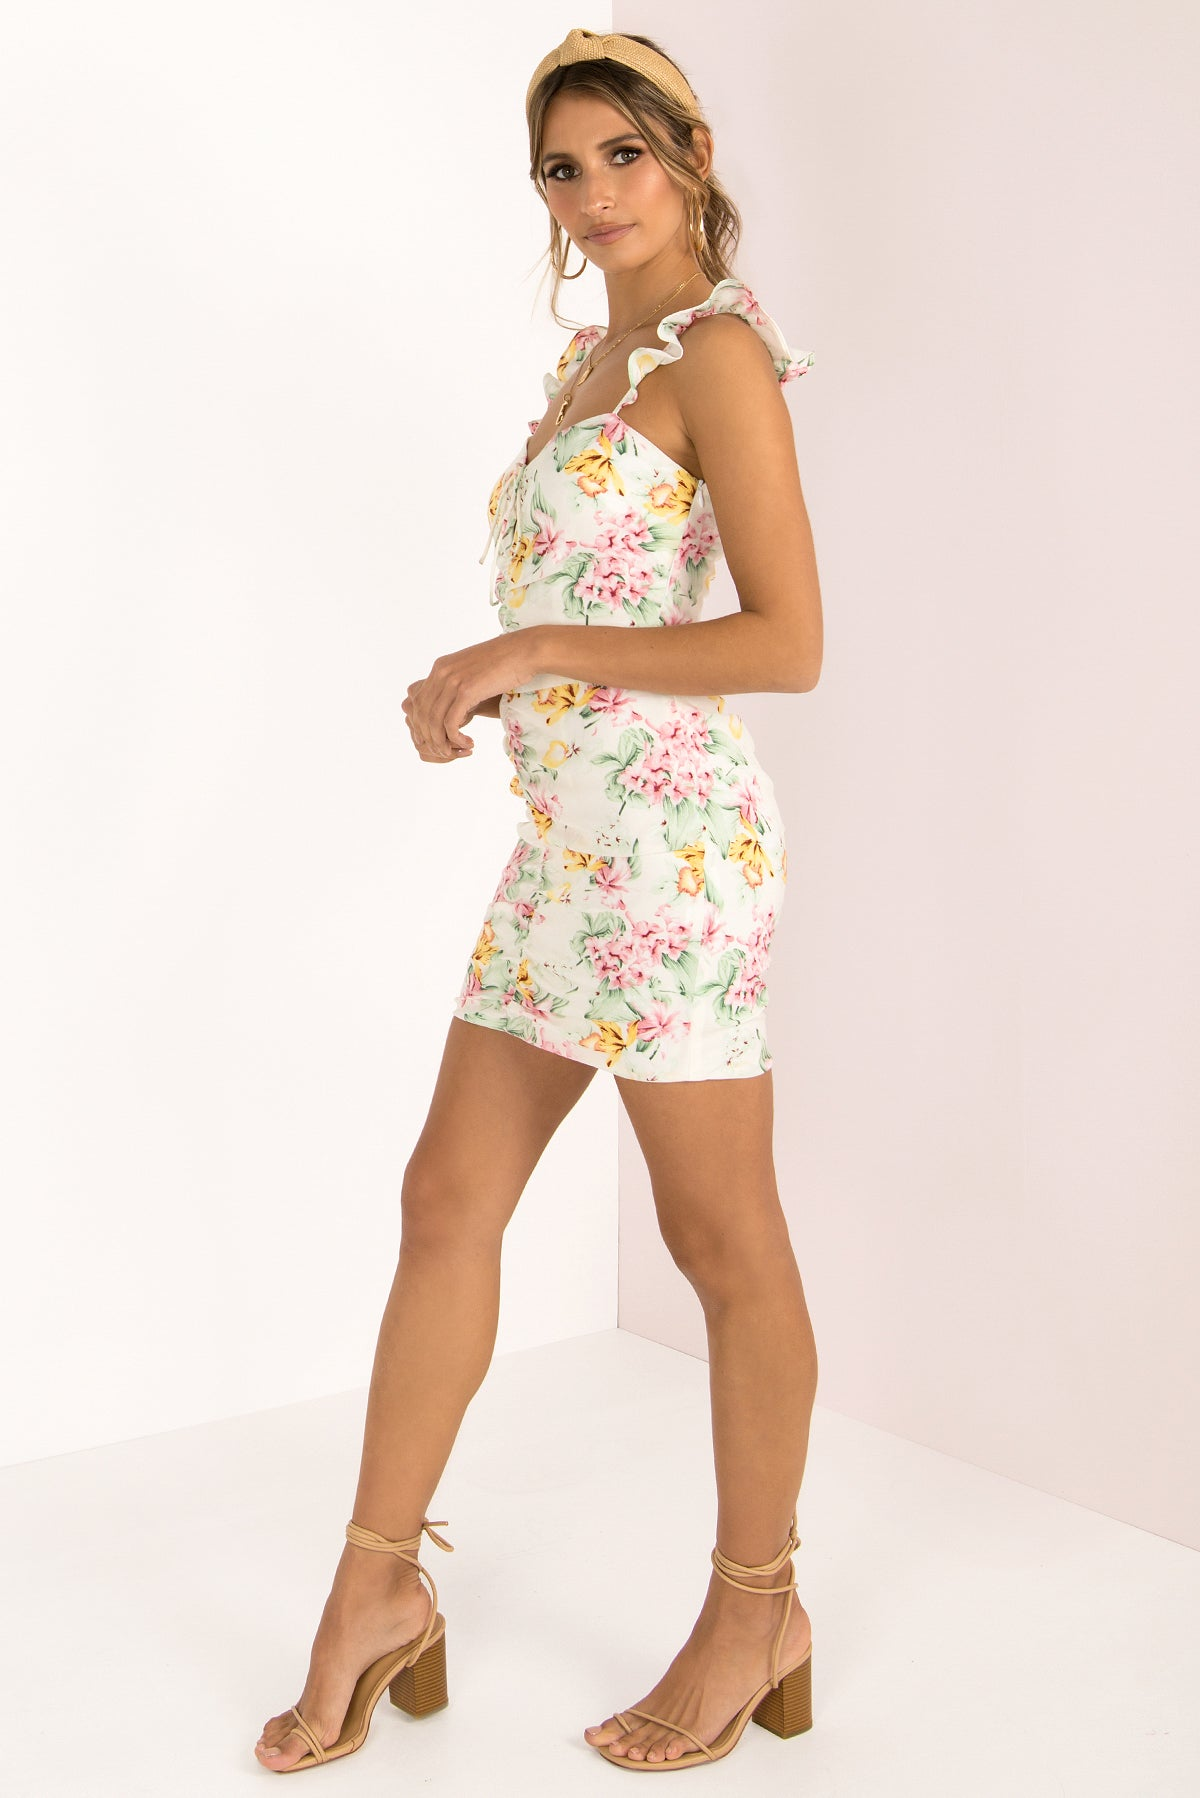 Cordelia Dress / Floral